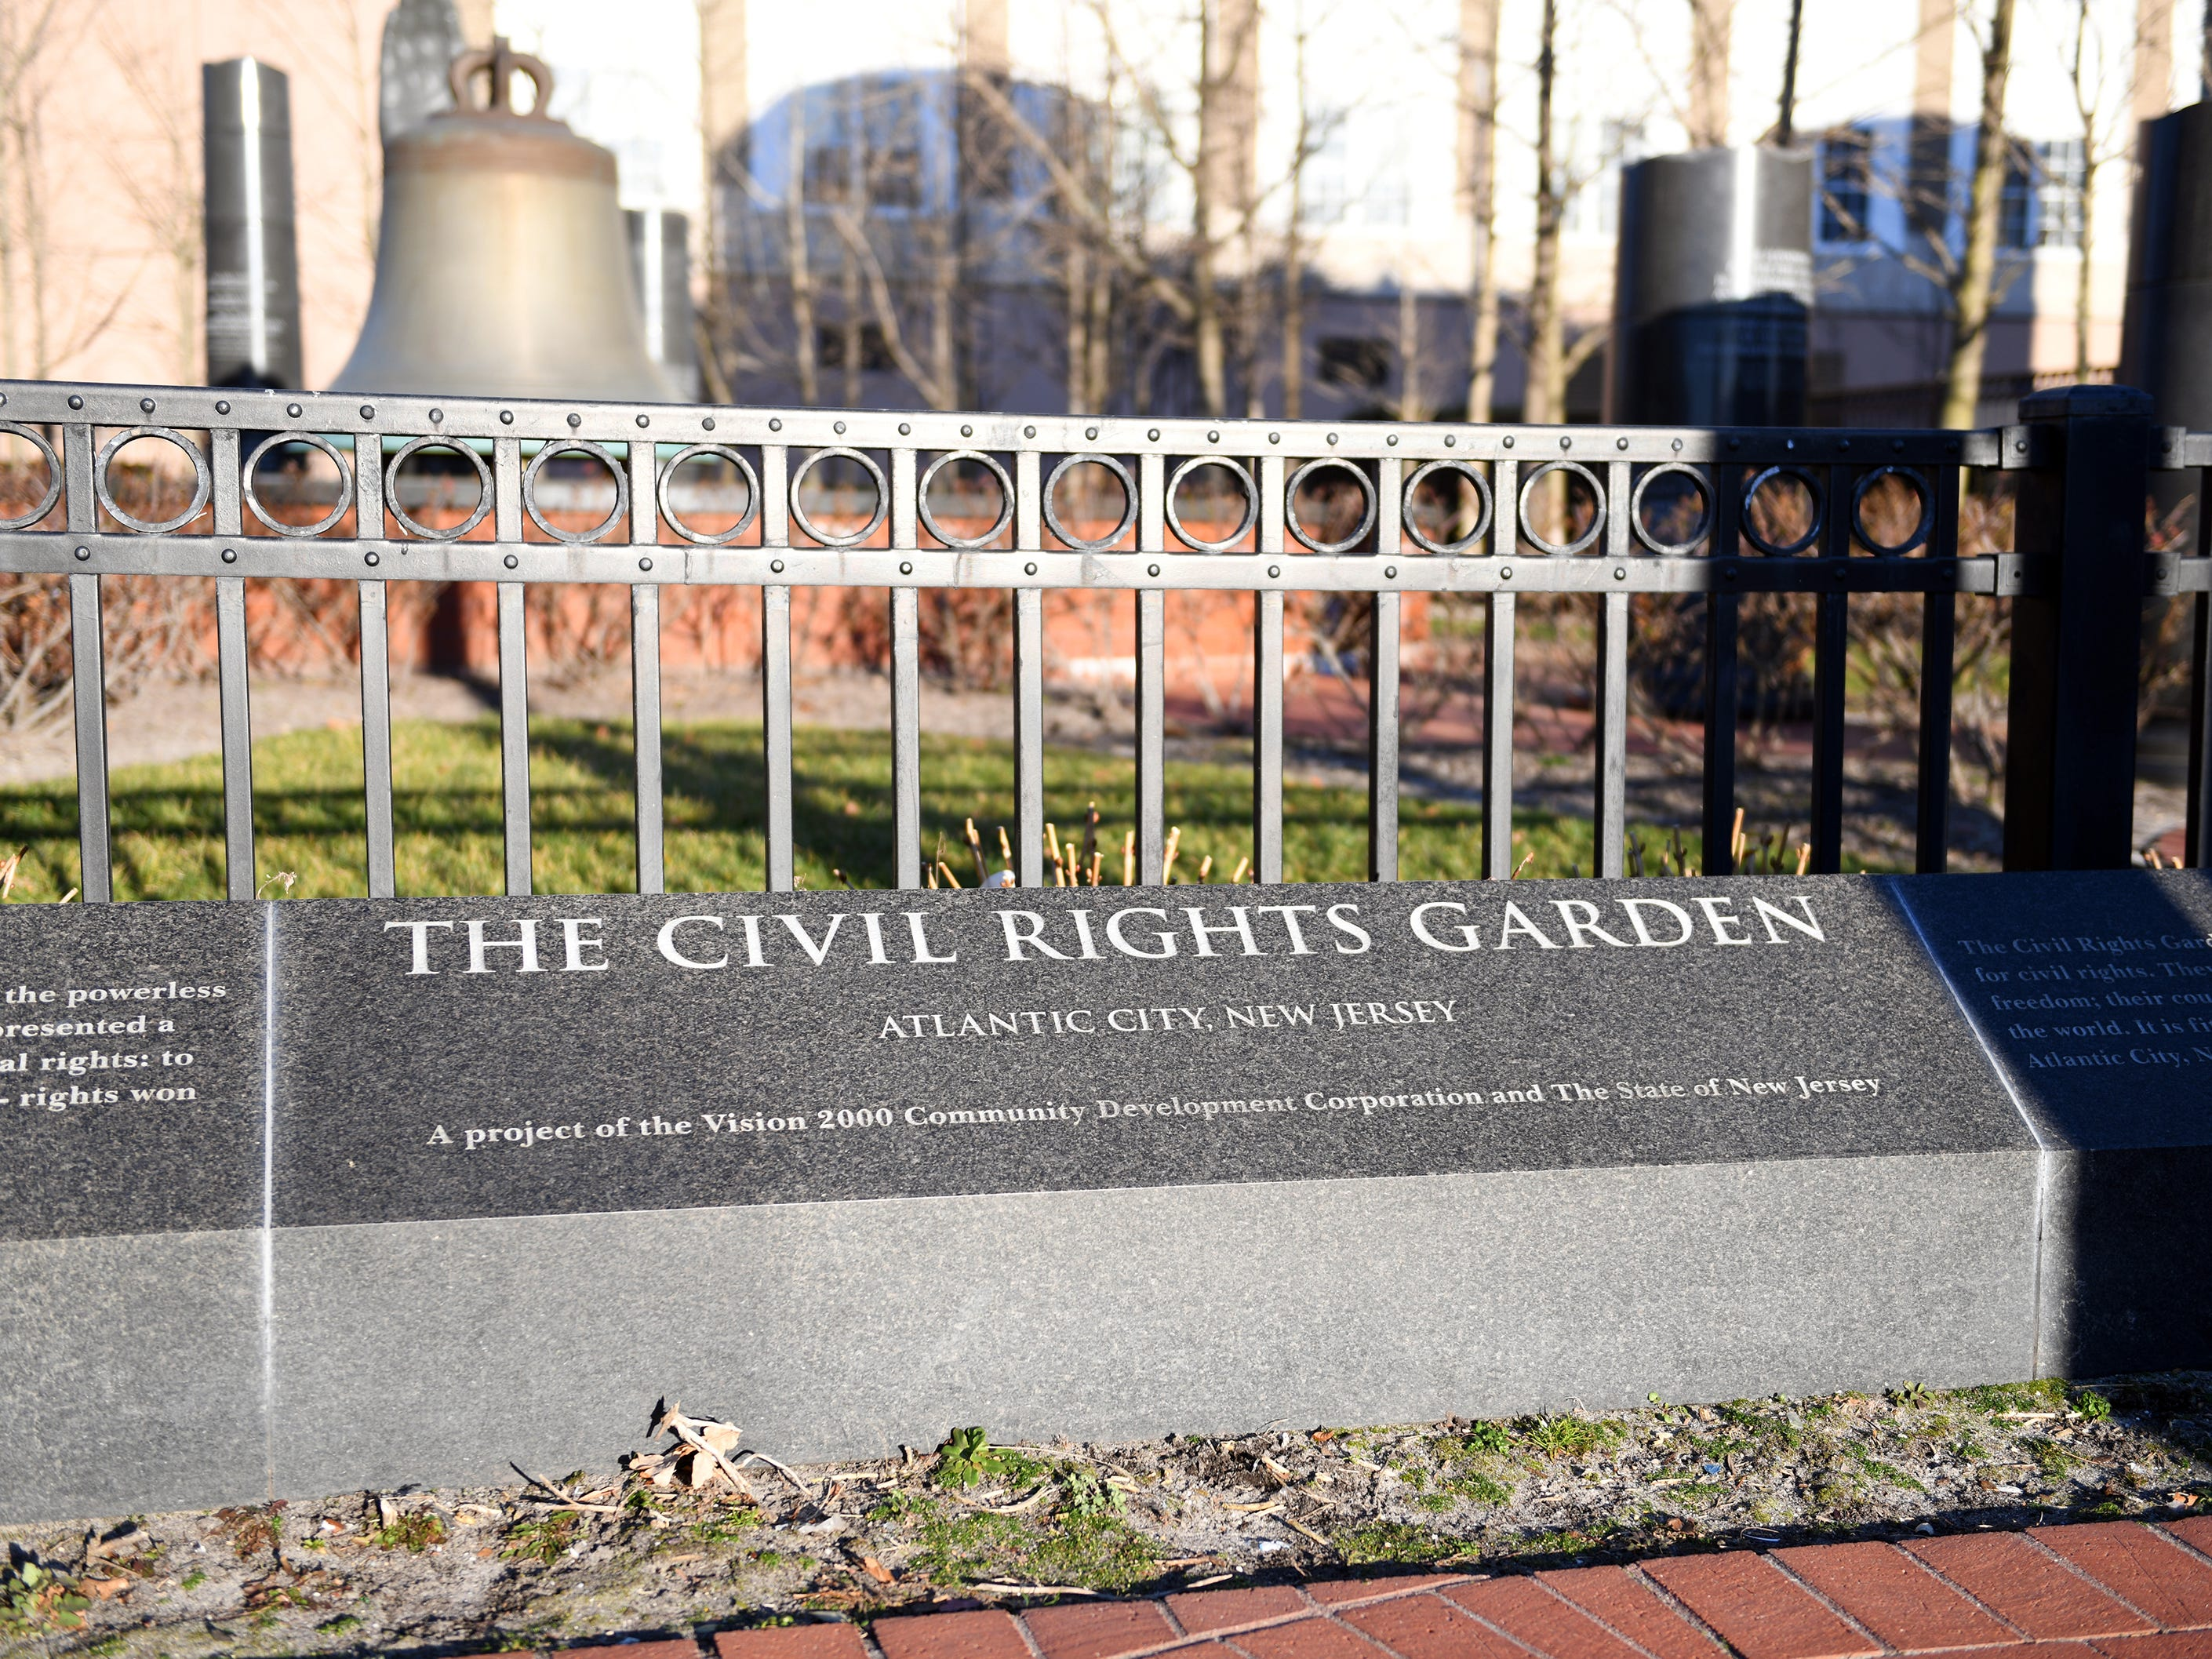 Atlantic City's Civil Rights Garden features 11 African granite columns engraved with quotes from distinguished civil rights leaders including Dr. Martin Luther King Jr. The entrance to the public sculpture garden is pictured here along Dr. Martin Luther King Jr. Boulevard on Friday, Jan. 11, 2019.